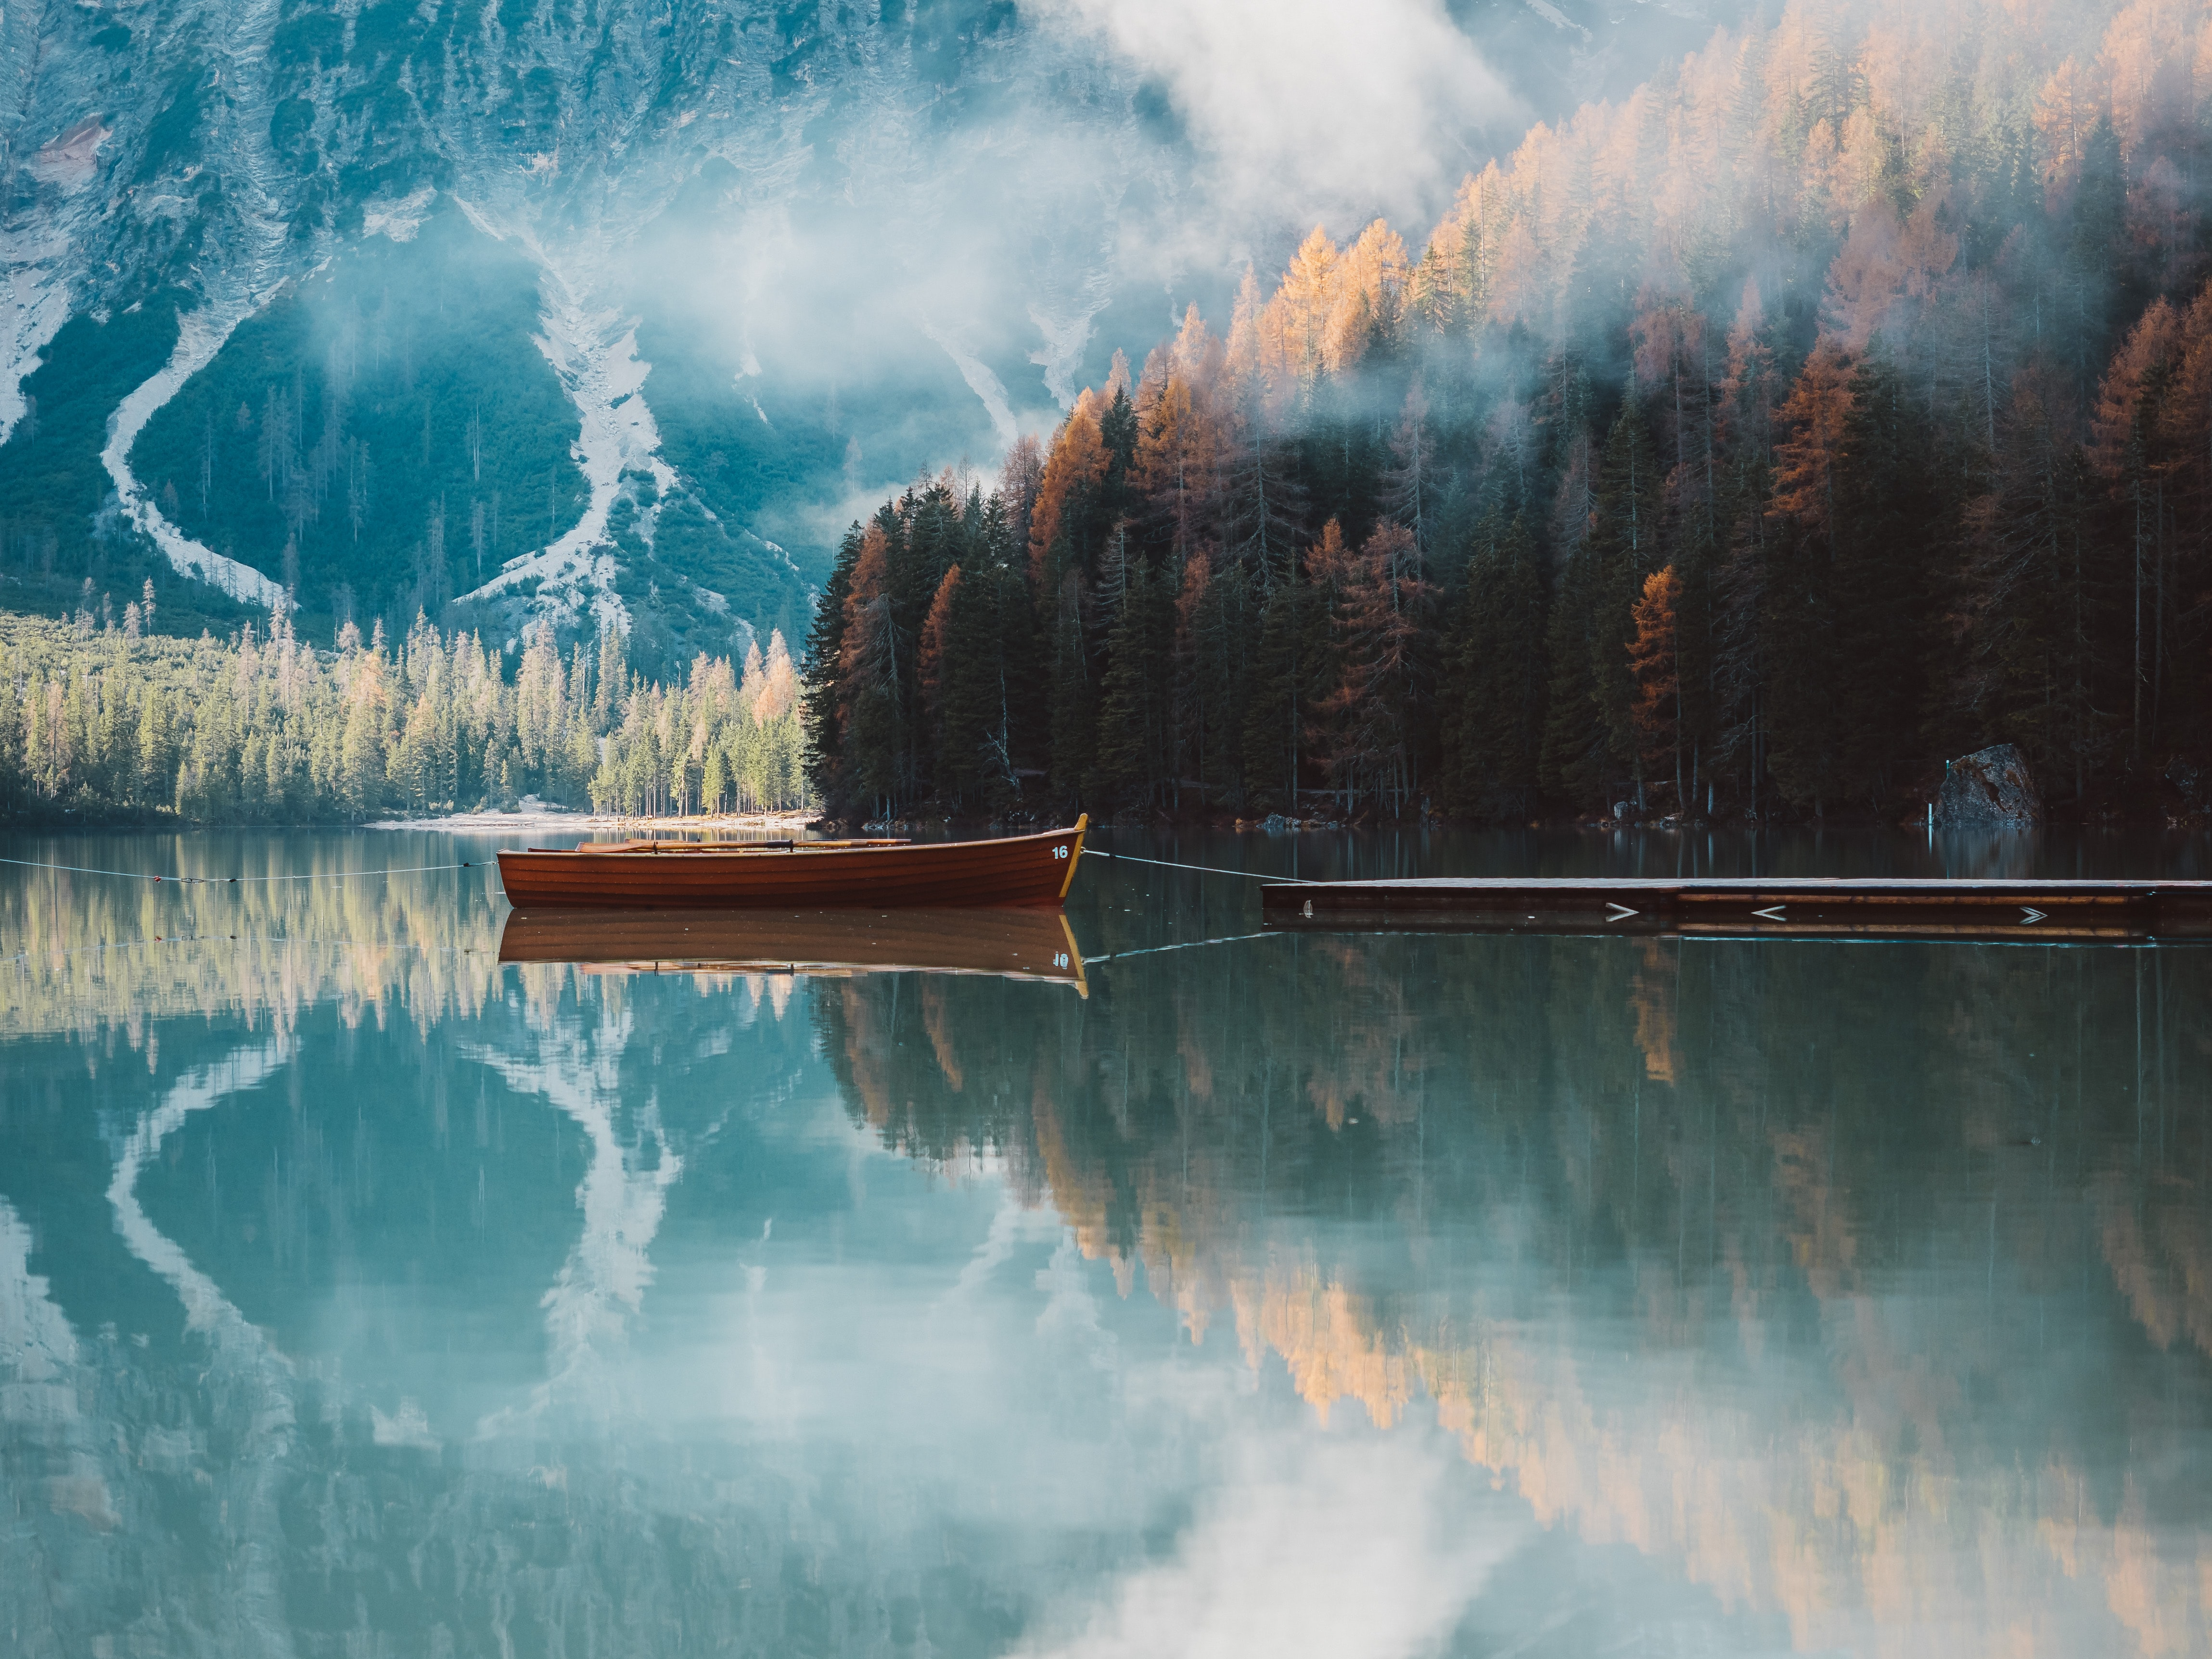 brown canoe on body of water near forest under fog